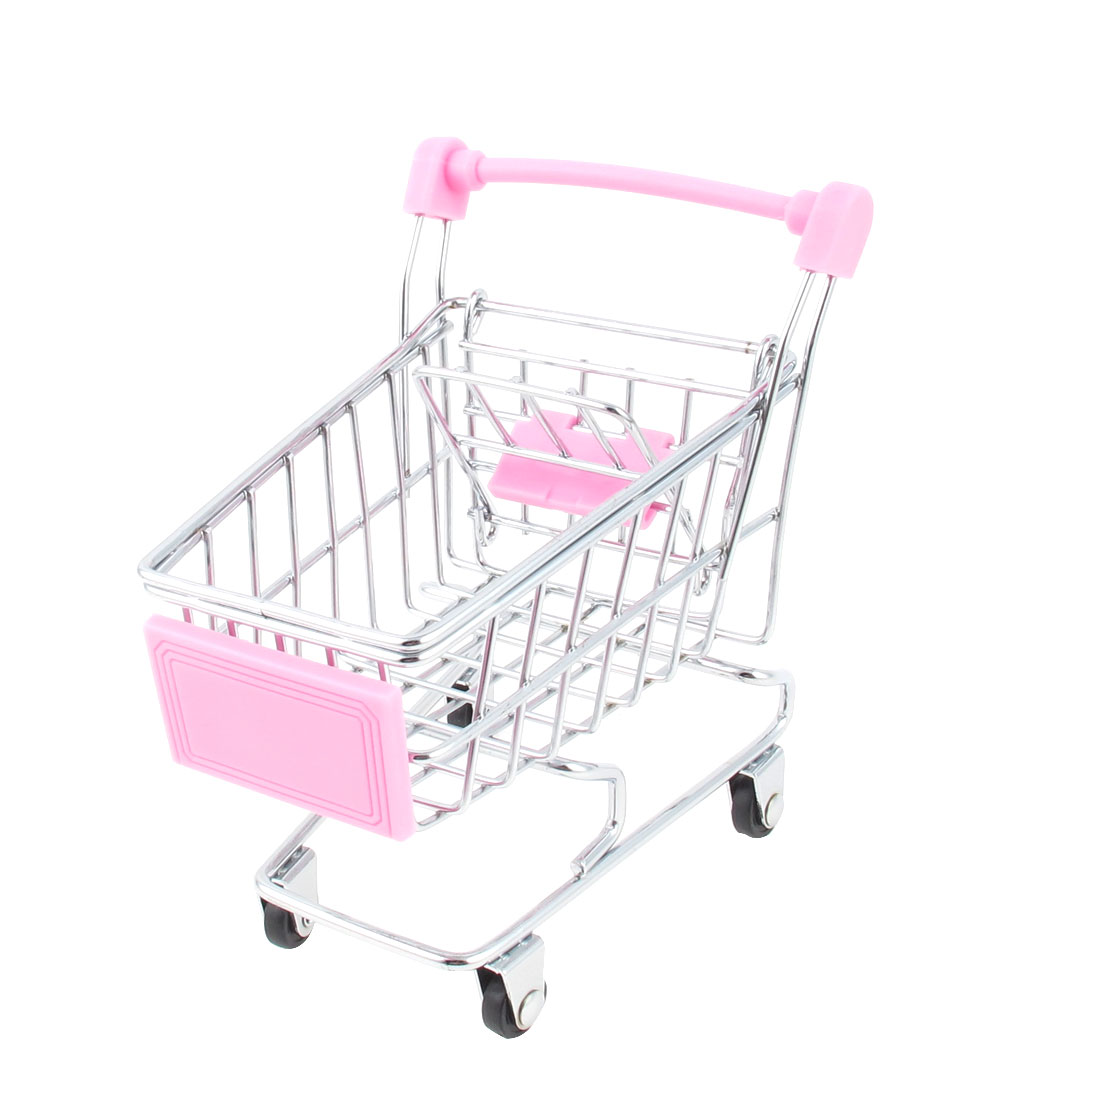 Movable Desktop Mini-Shopping Cart Model Toy Silver Tone Pink by